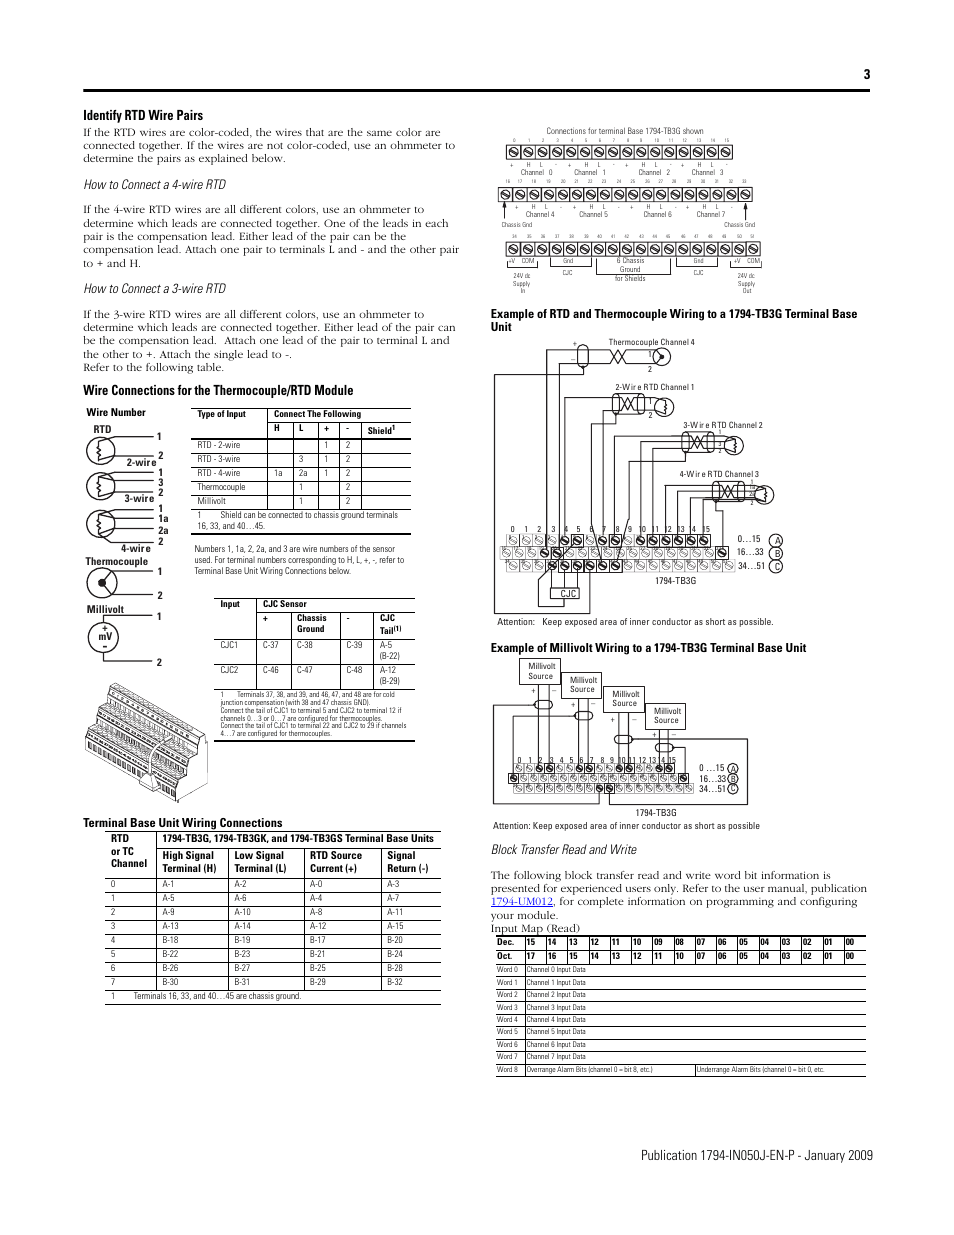 hight resolution of wire connections for the thermocouple rtd module how to connect a 4 wire rtd how to connect a 3 wire rtd rockwell automation 1794 irt8xt b tc mv rtd